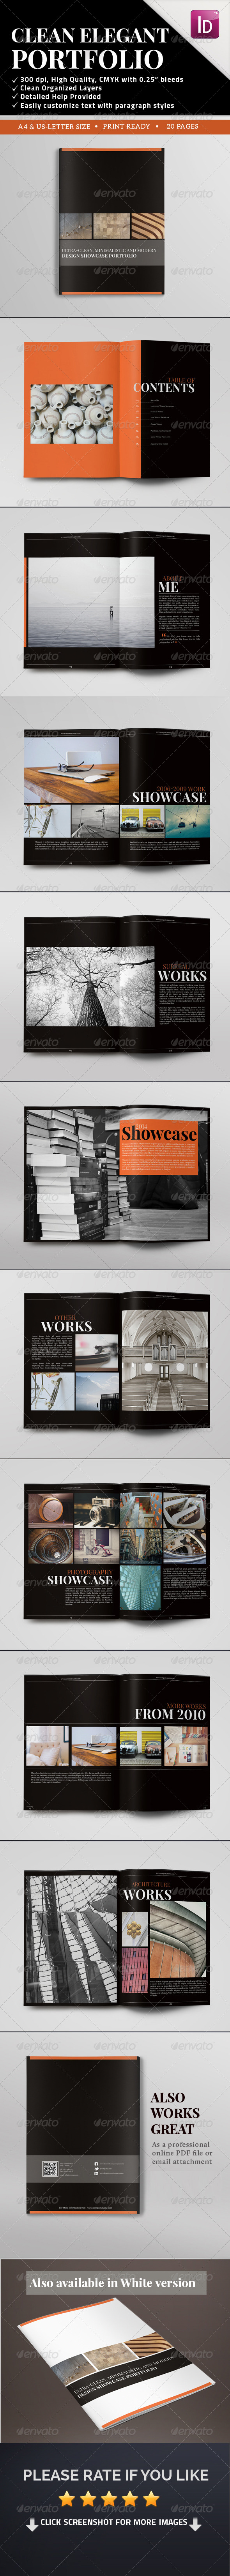 GraphicRiver Clean Elegant Portfolio Template 20 Pages 7872751